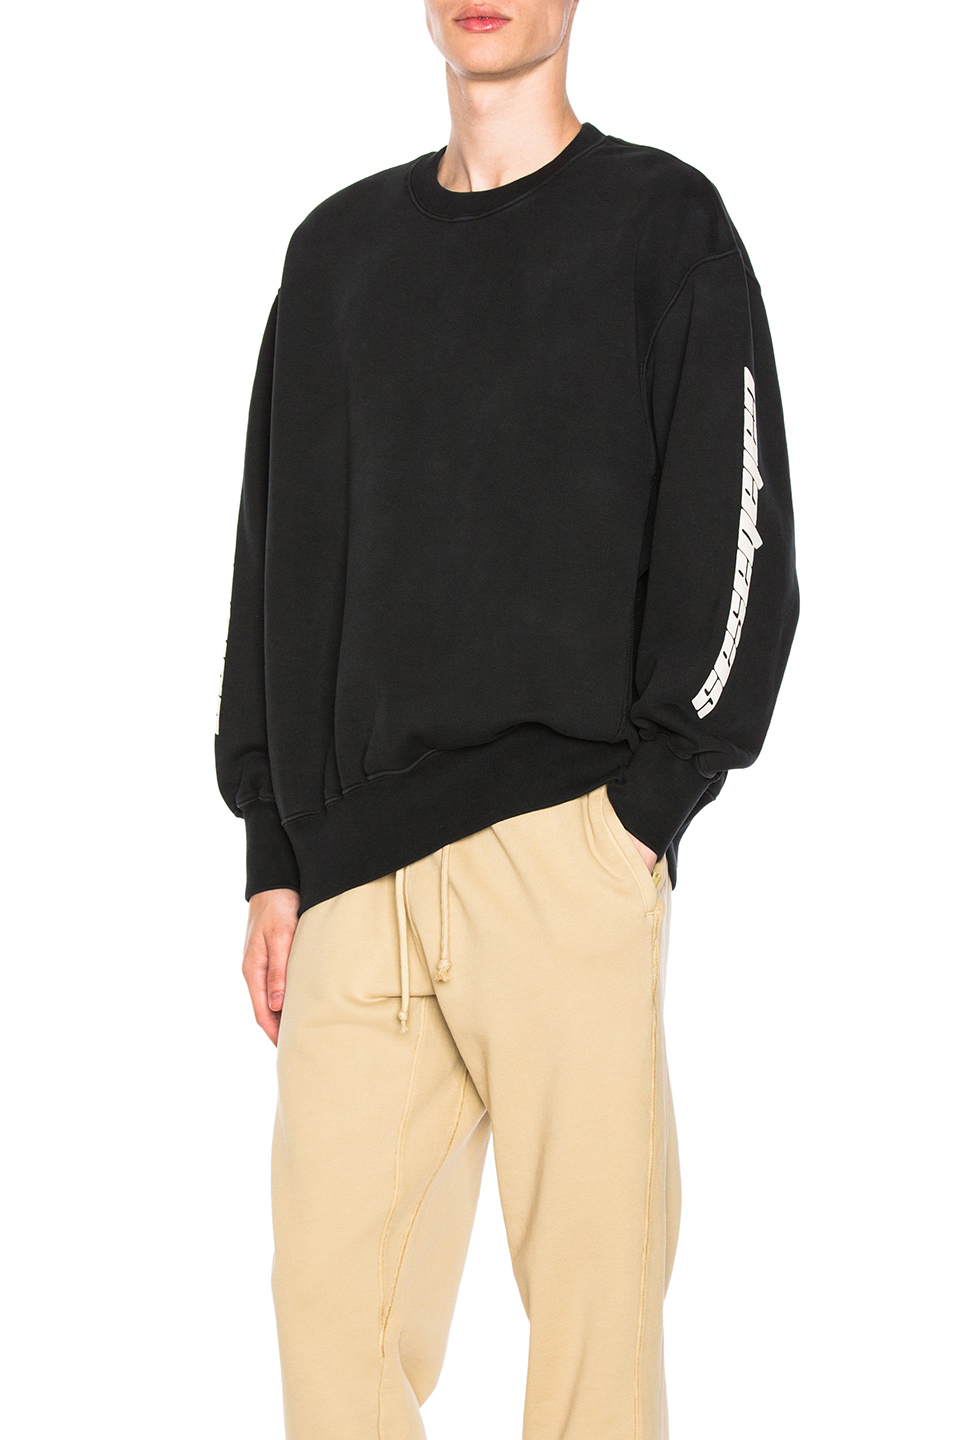 YEEZY Season 4 Boxy Crewneck Sweatshirt in Black